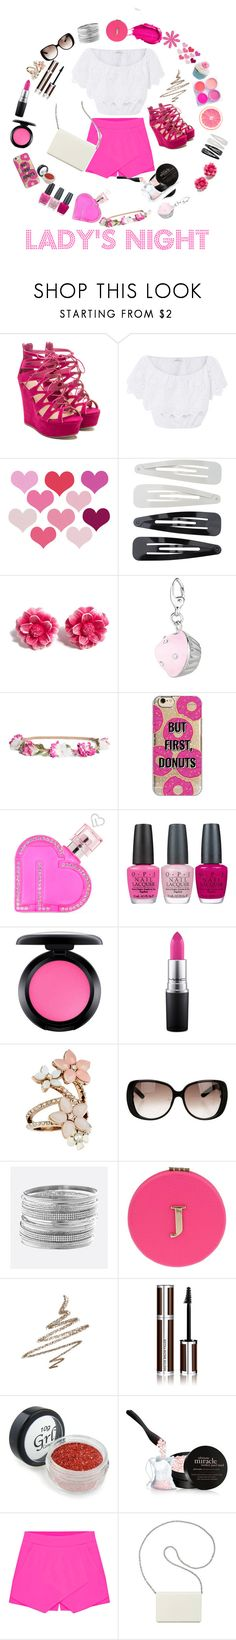 """Lady's pink night"" by nejla-zejnilovic ❤ liked on Polyvore featuring Miguelina, Revlon, Forever 21, Tarina Tarantino, H&M, Agent 18, Aéropostale, OPI, MAC Cosmetics and Accessorize"